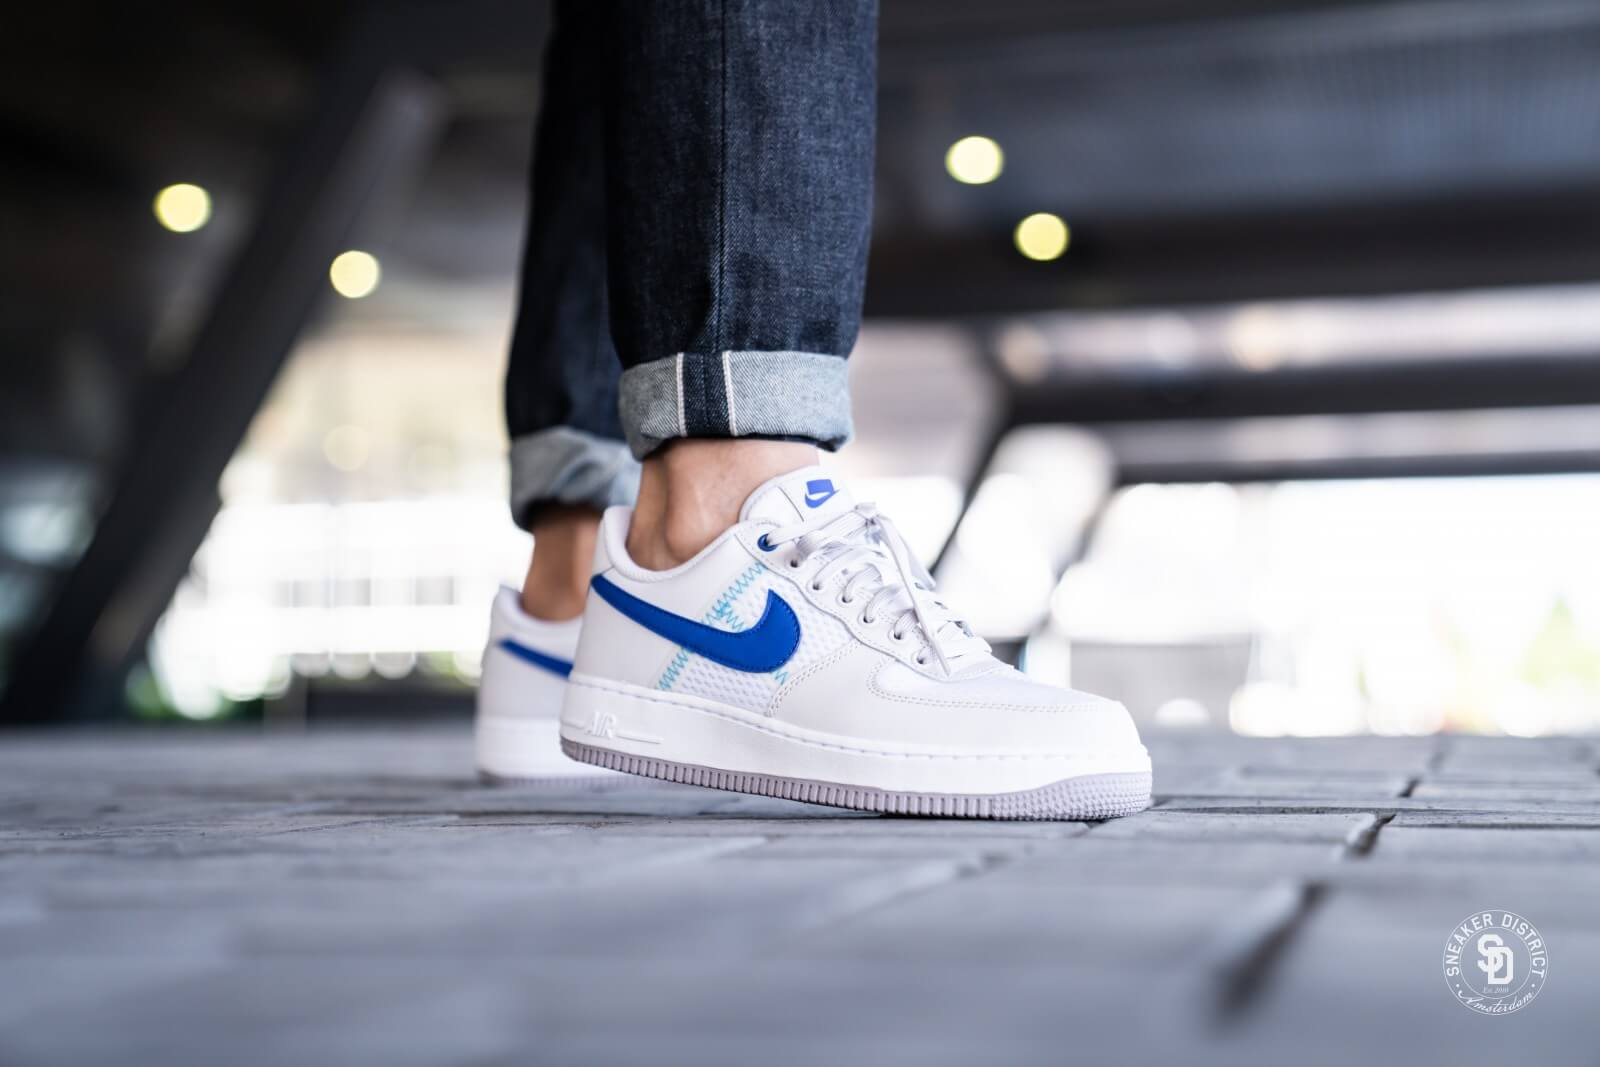 Nike Air Force 1 '07 LV8 1 atmosphere grey racer blue